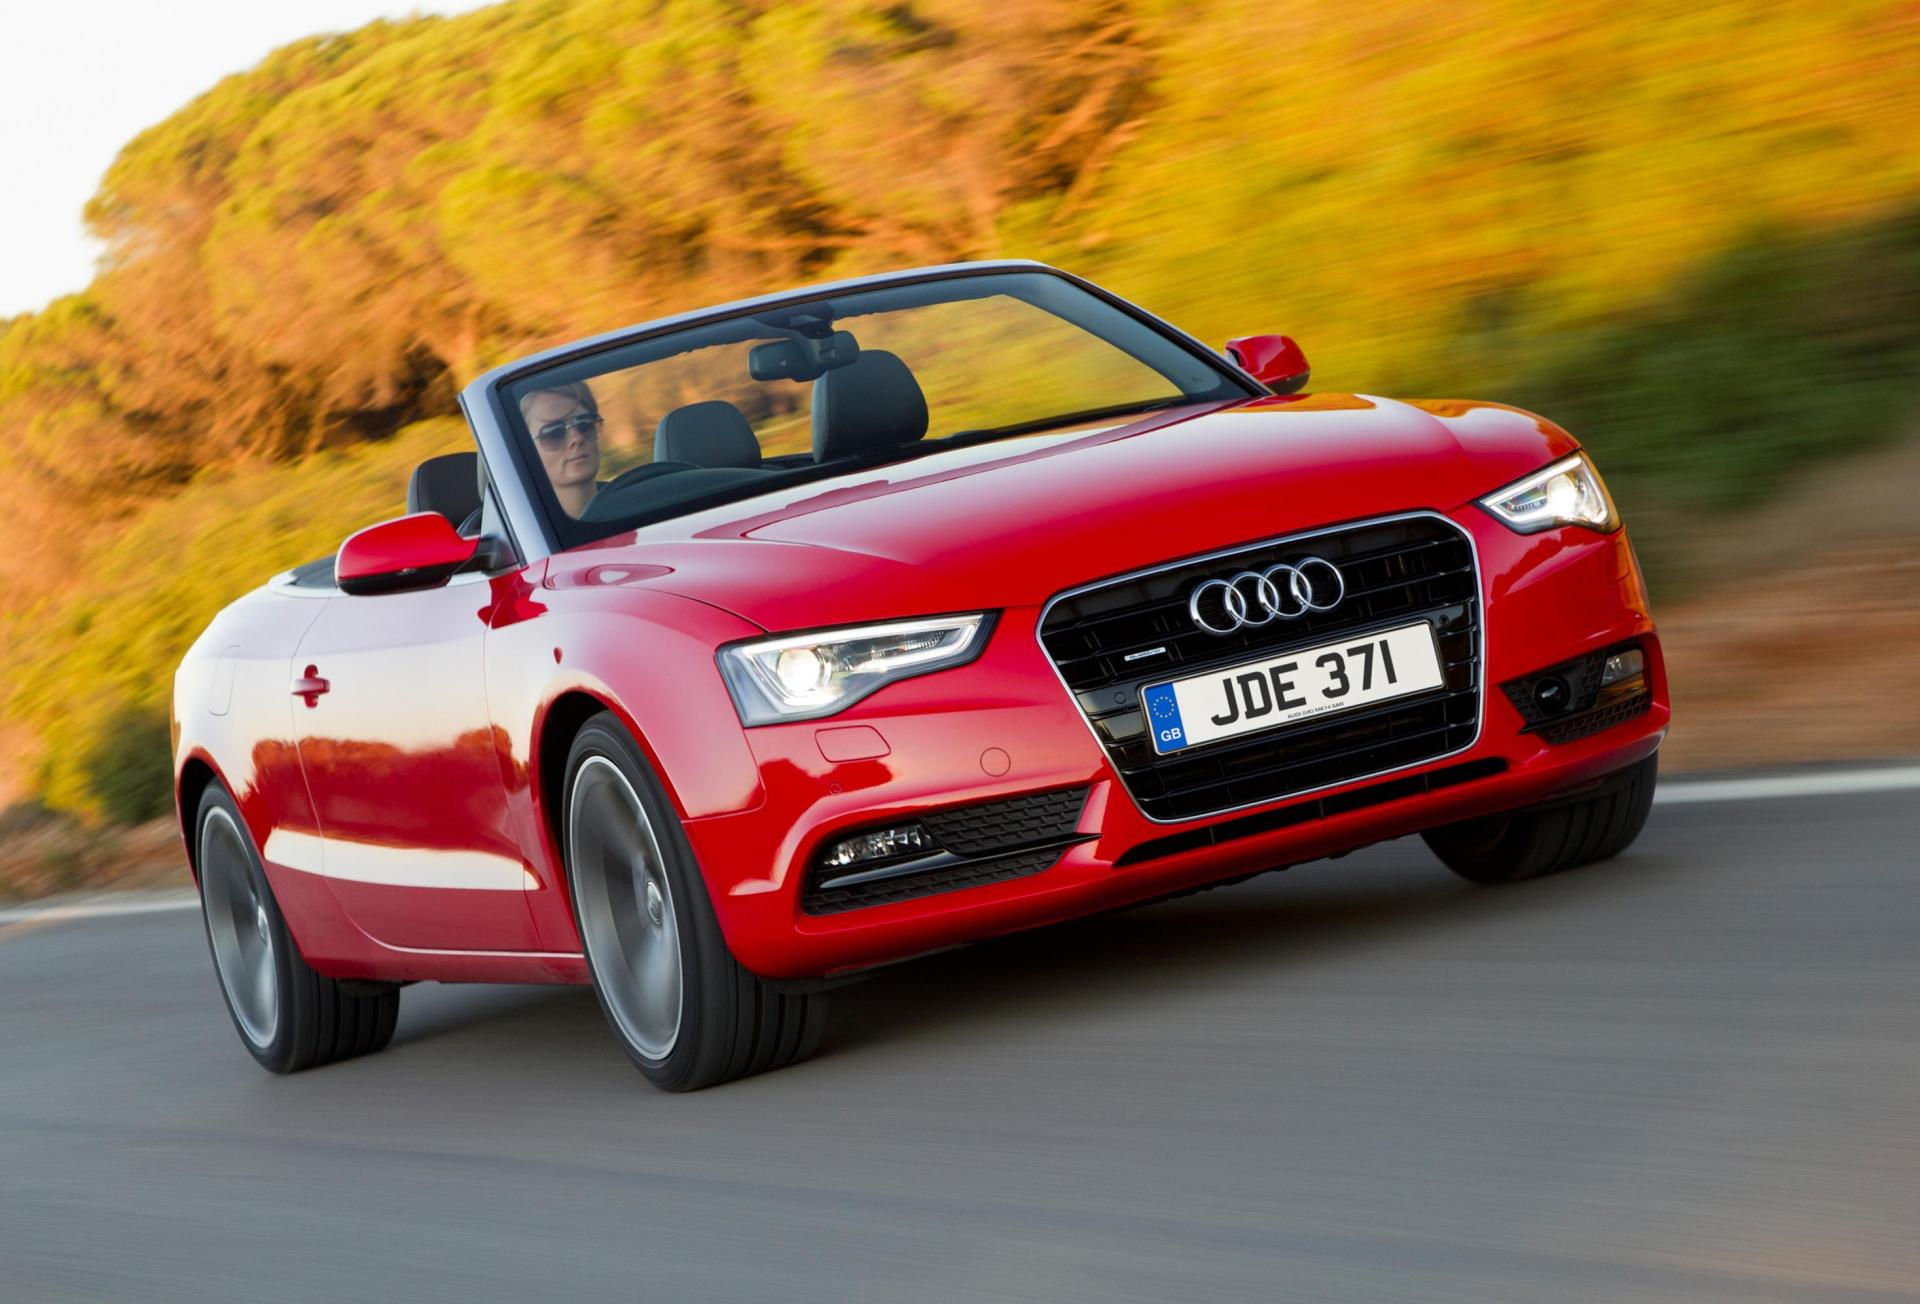 The A5 Convertible is a great daily drop-top option.